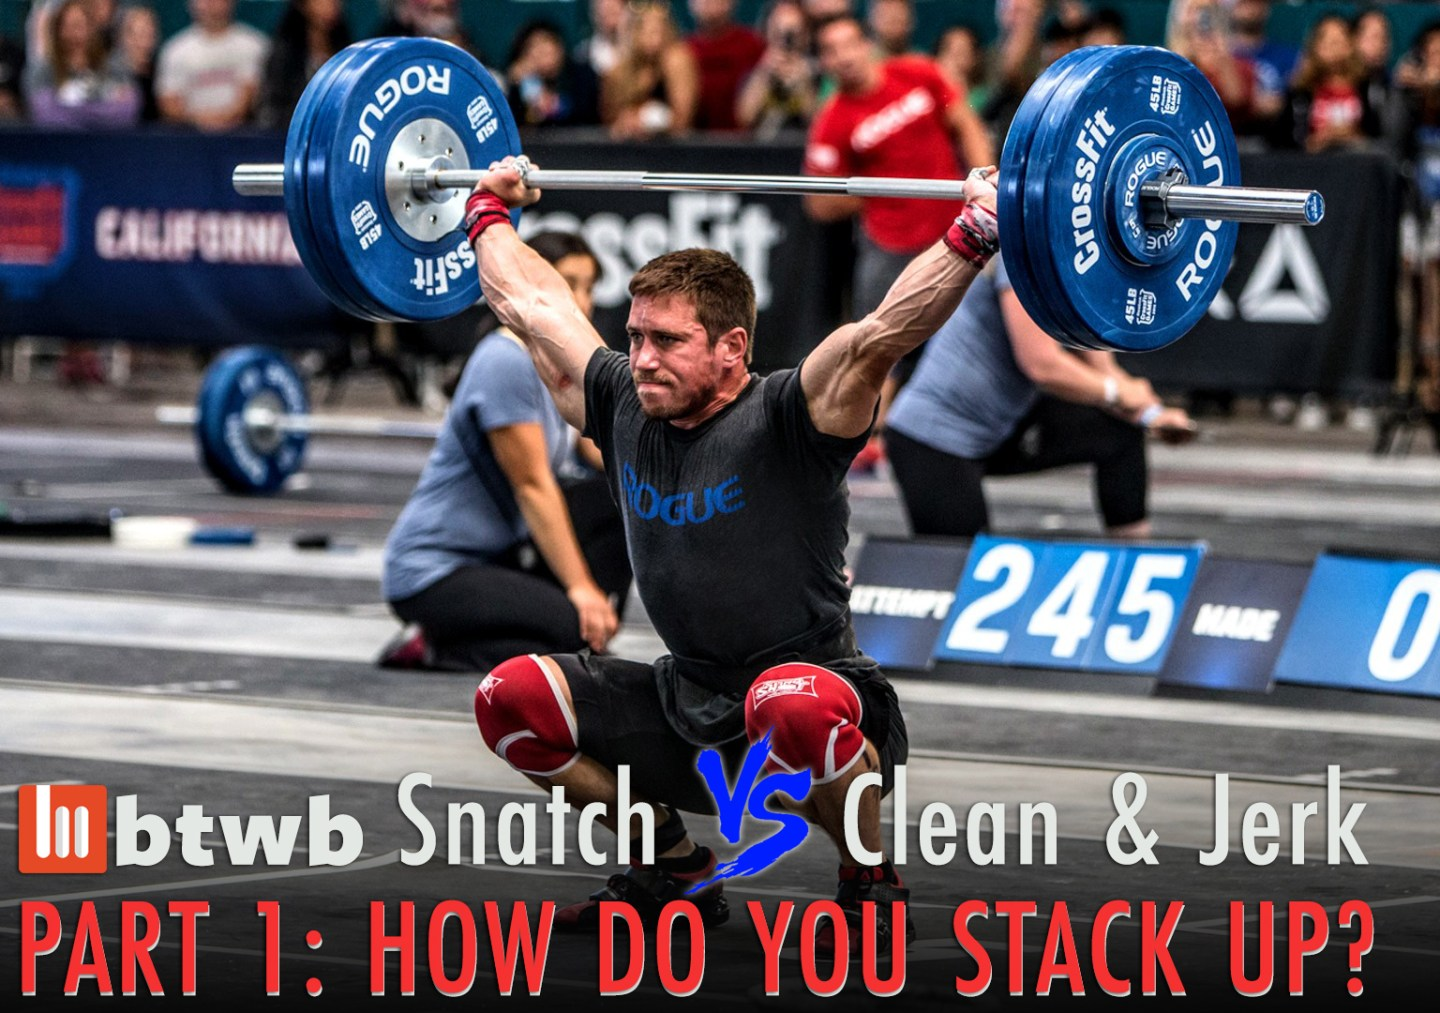 Snatch vs Clean & Jerk Part 1: How Do You Stack Up?